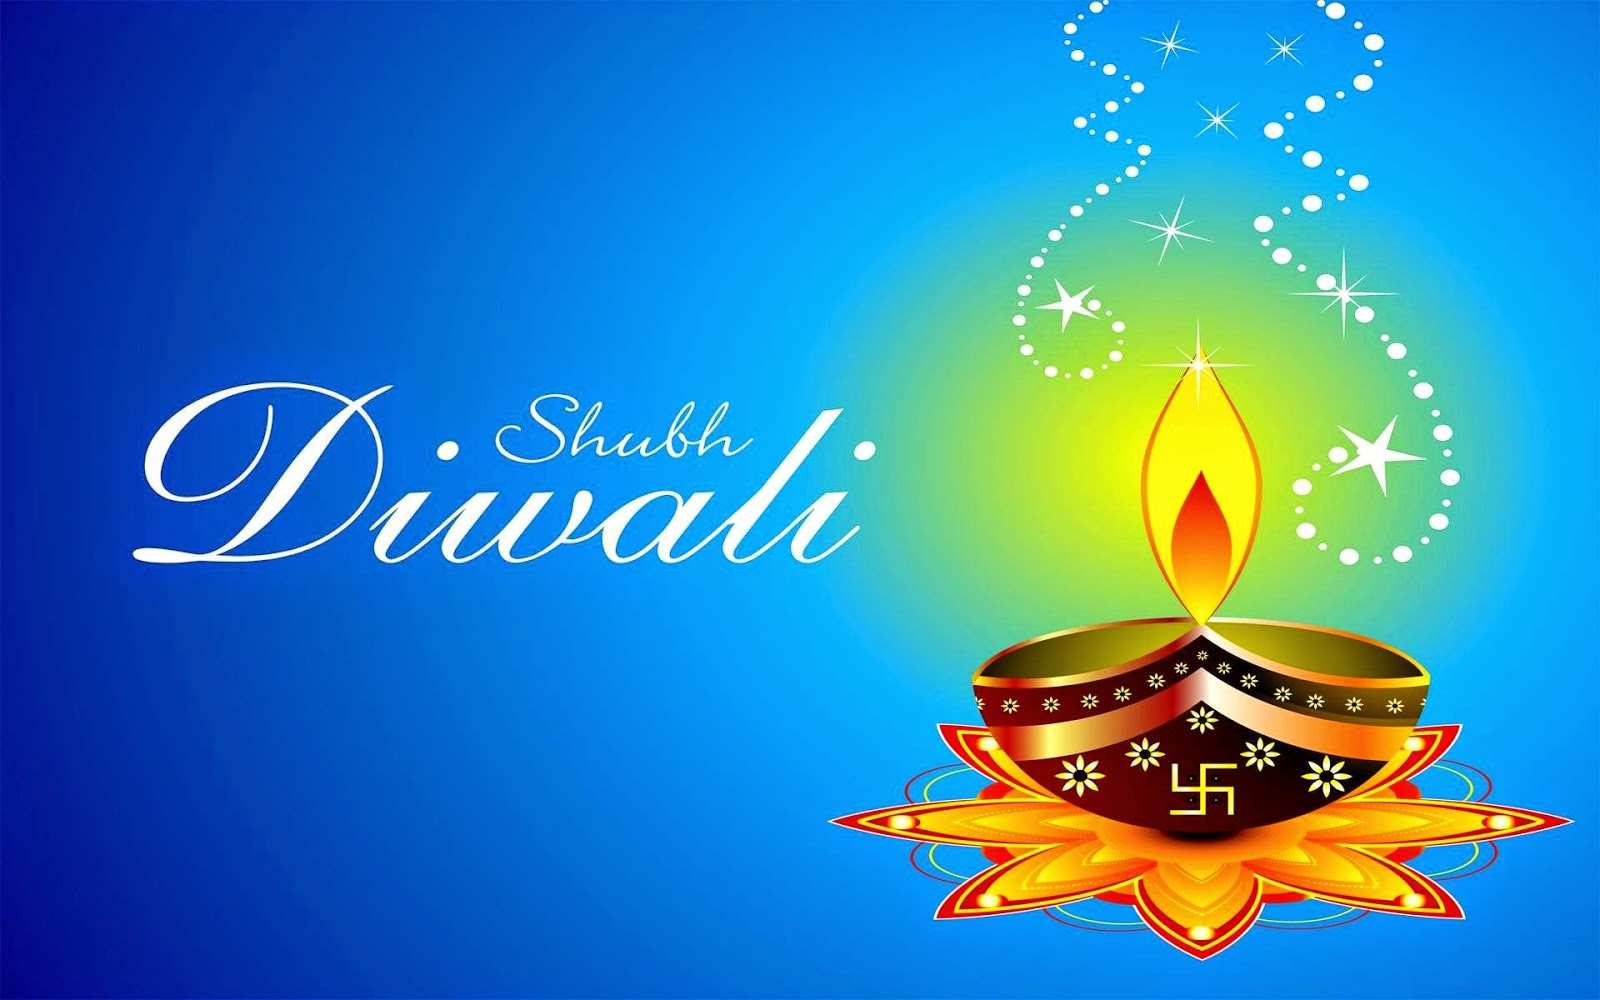 happy diwali wallpaper 2014 hd quality